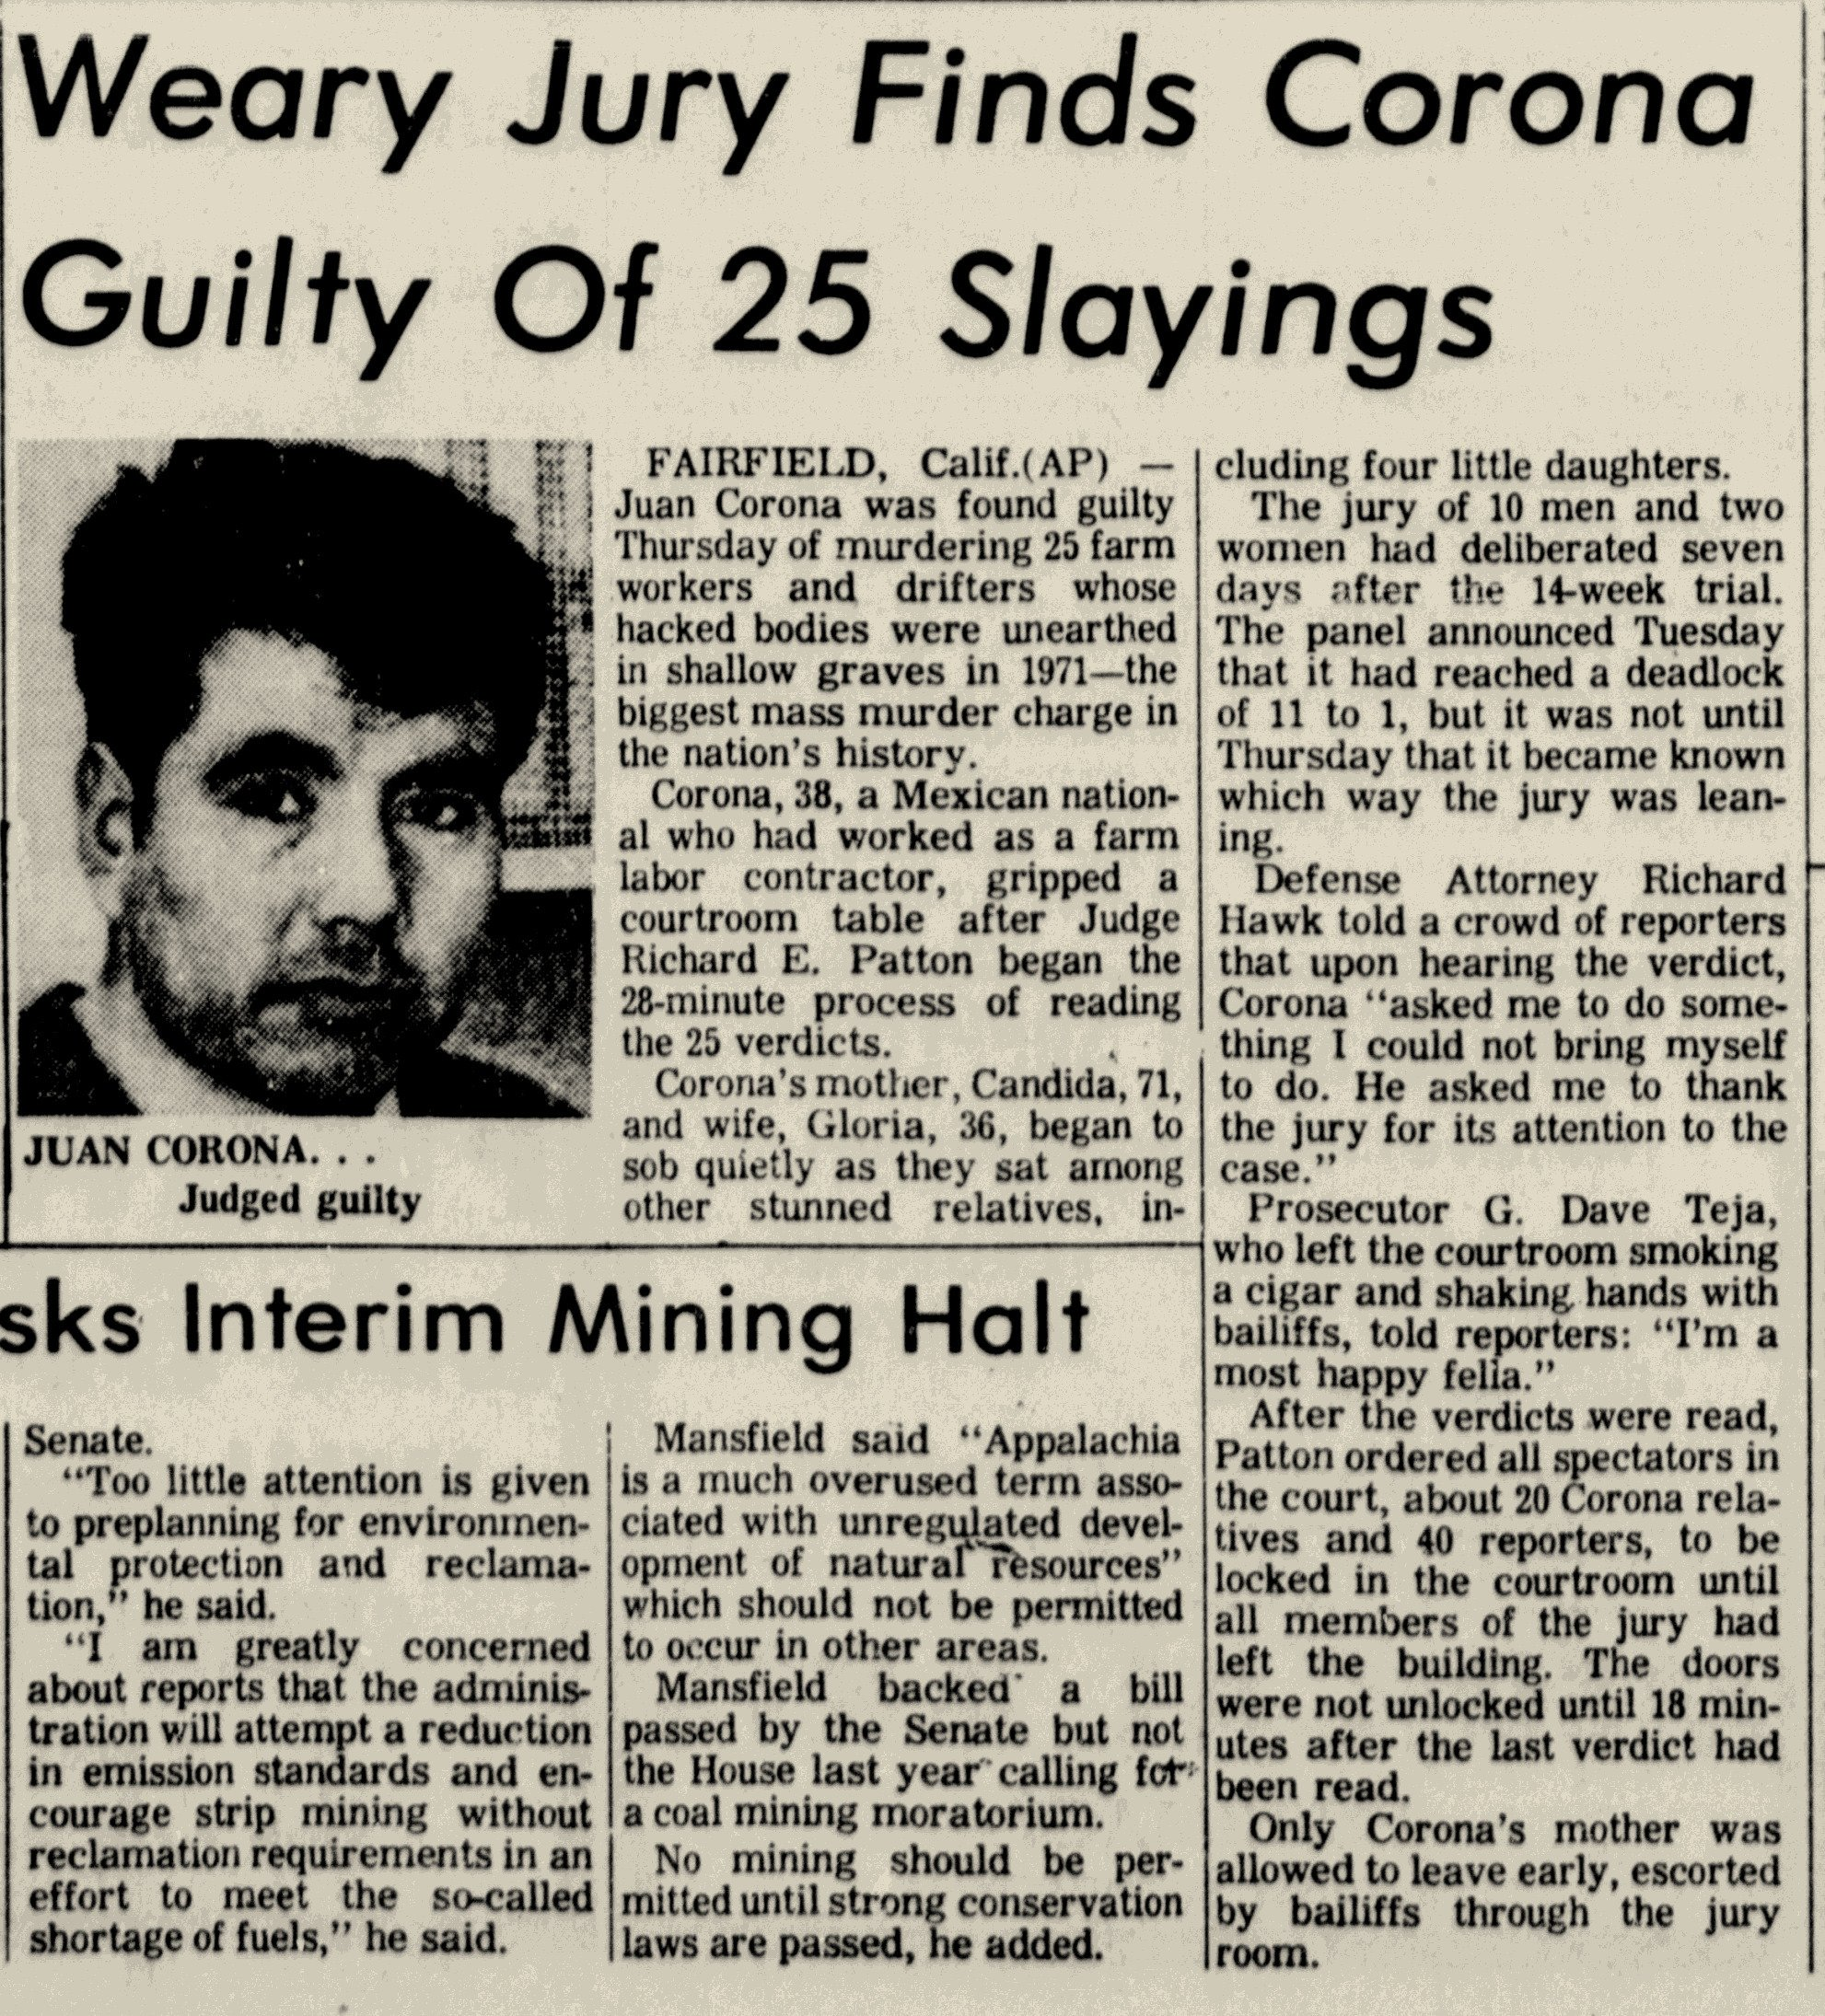 As the deadliest serial killer in American history at the time, Juan Corona was national news. Here, his verdict appears in West Virginia's Bluefield Daily Telegraph (19 Jan. 1973, p. 17).